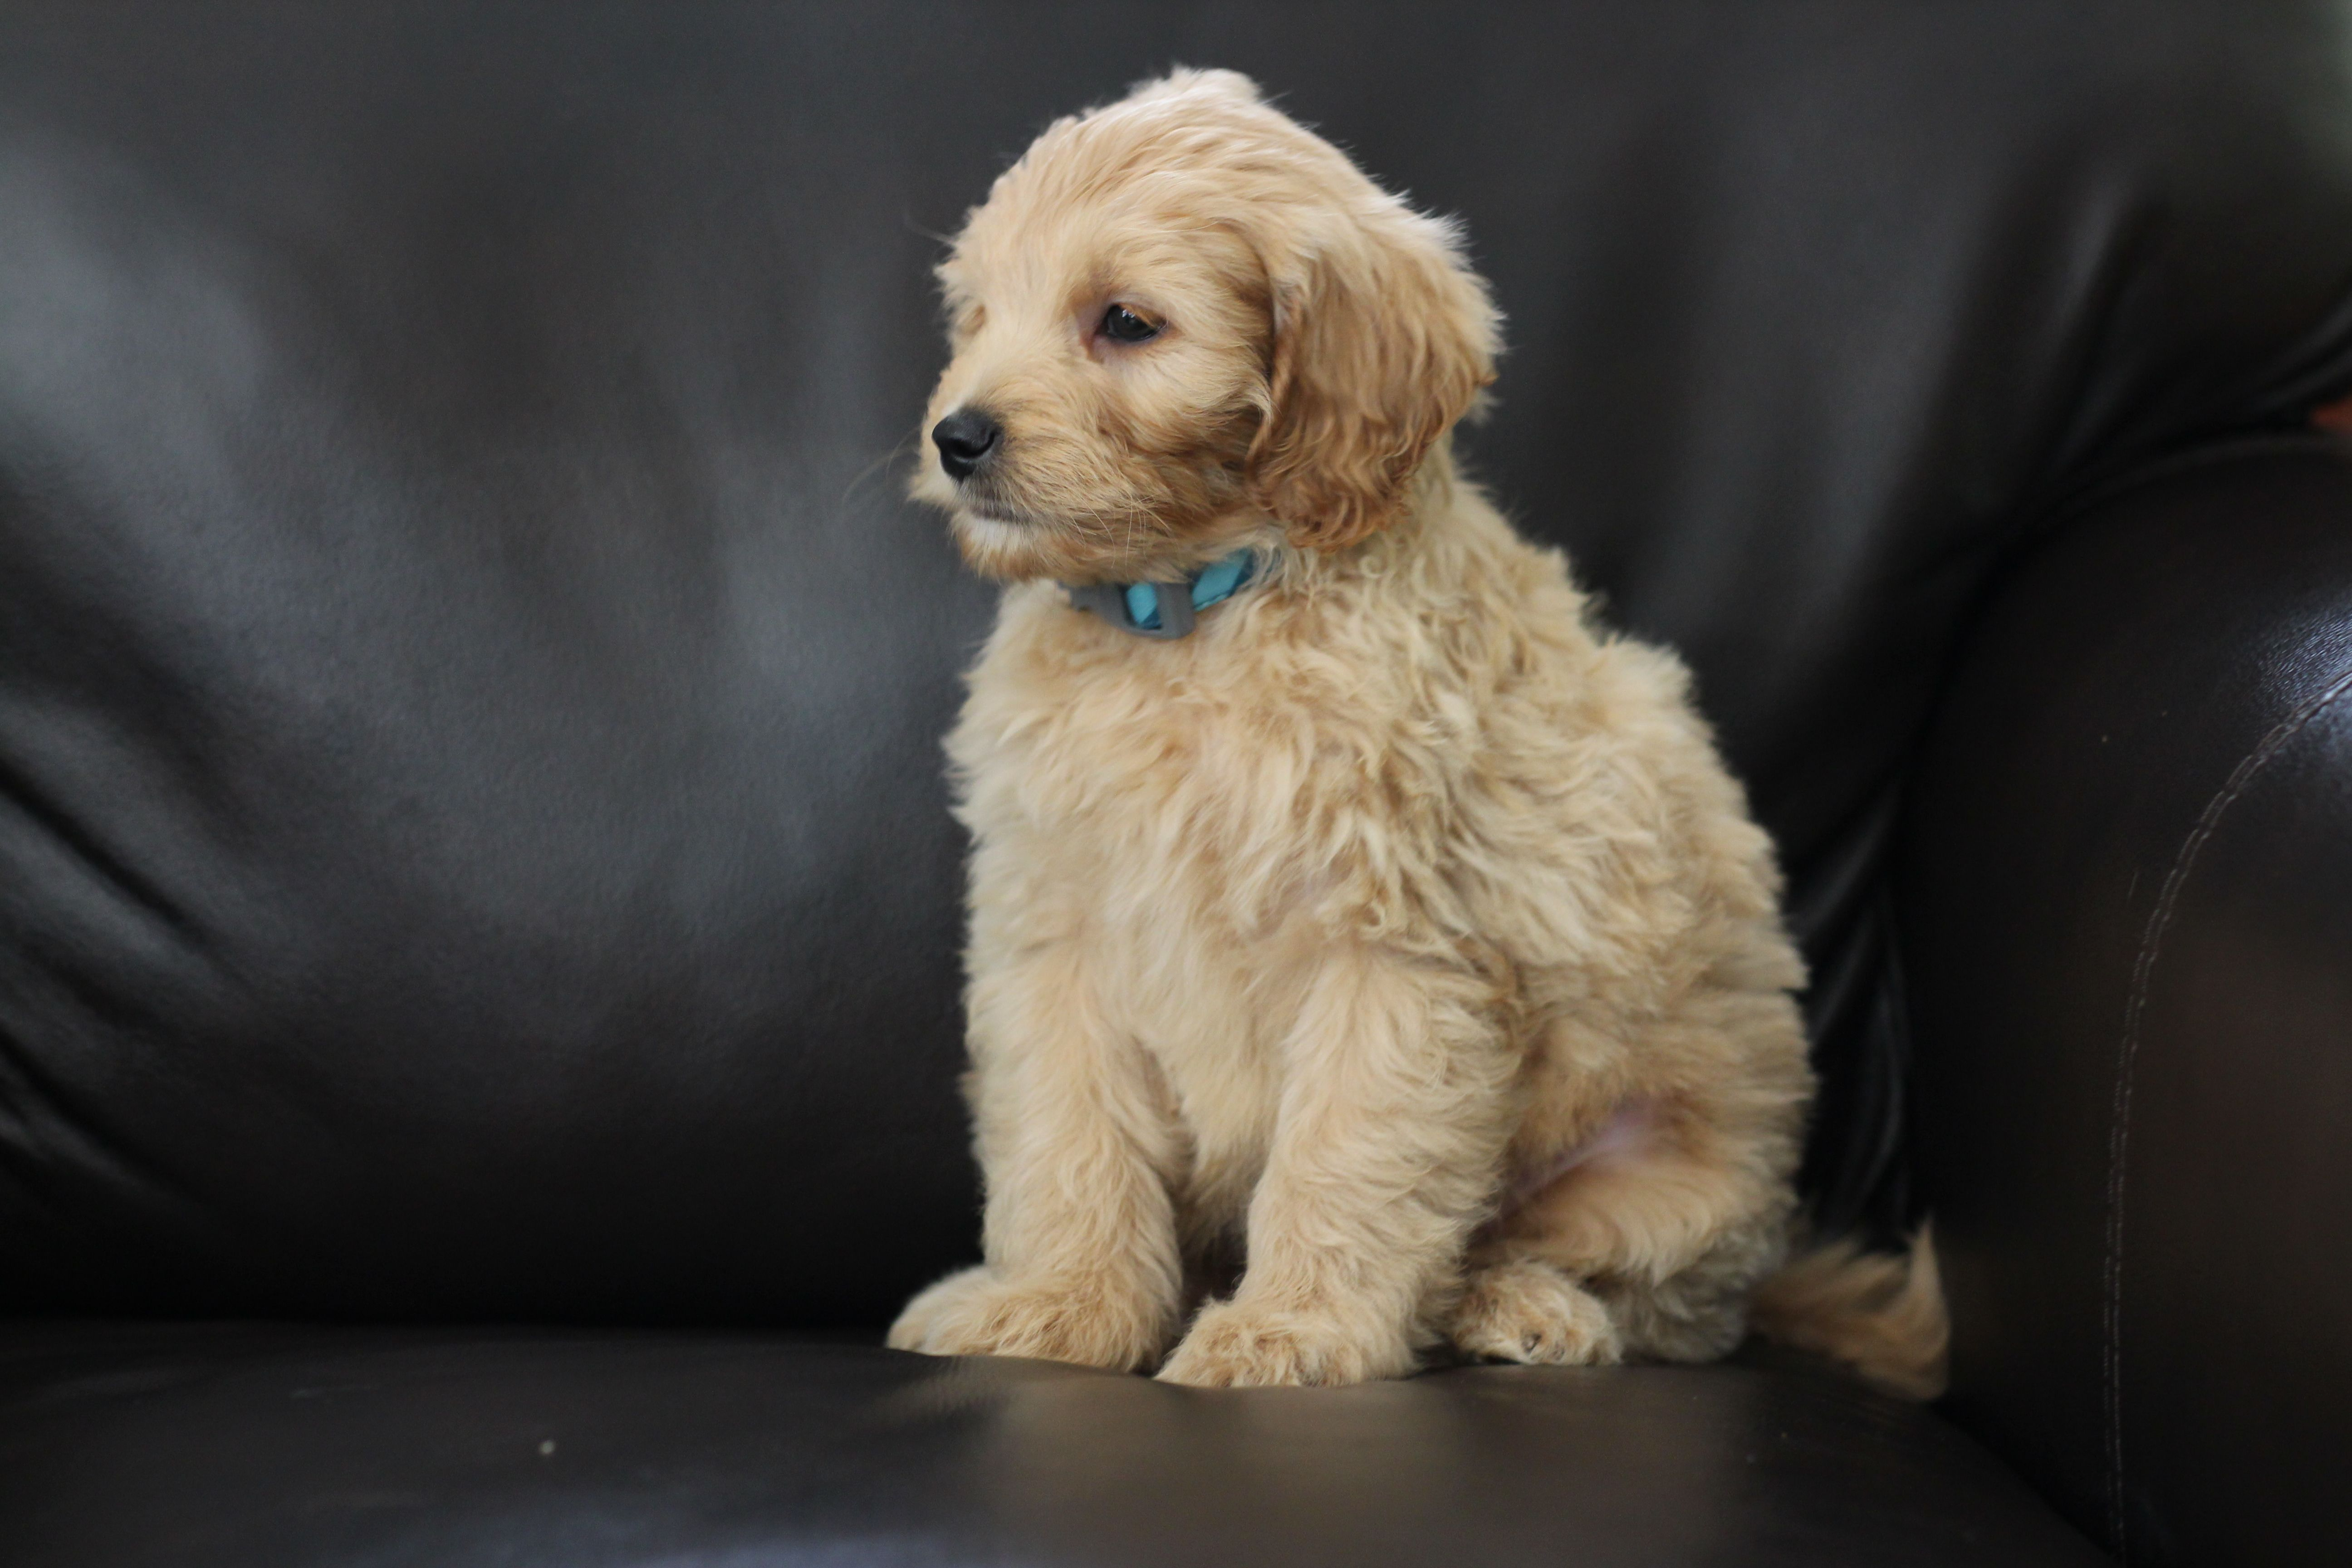 River Valley Goldendoodles Puppy Breeder In Ny Near Pa Near Nyc Mini Goldendoodle Puppies Goldendoodle Puppies